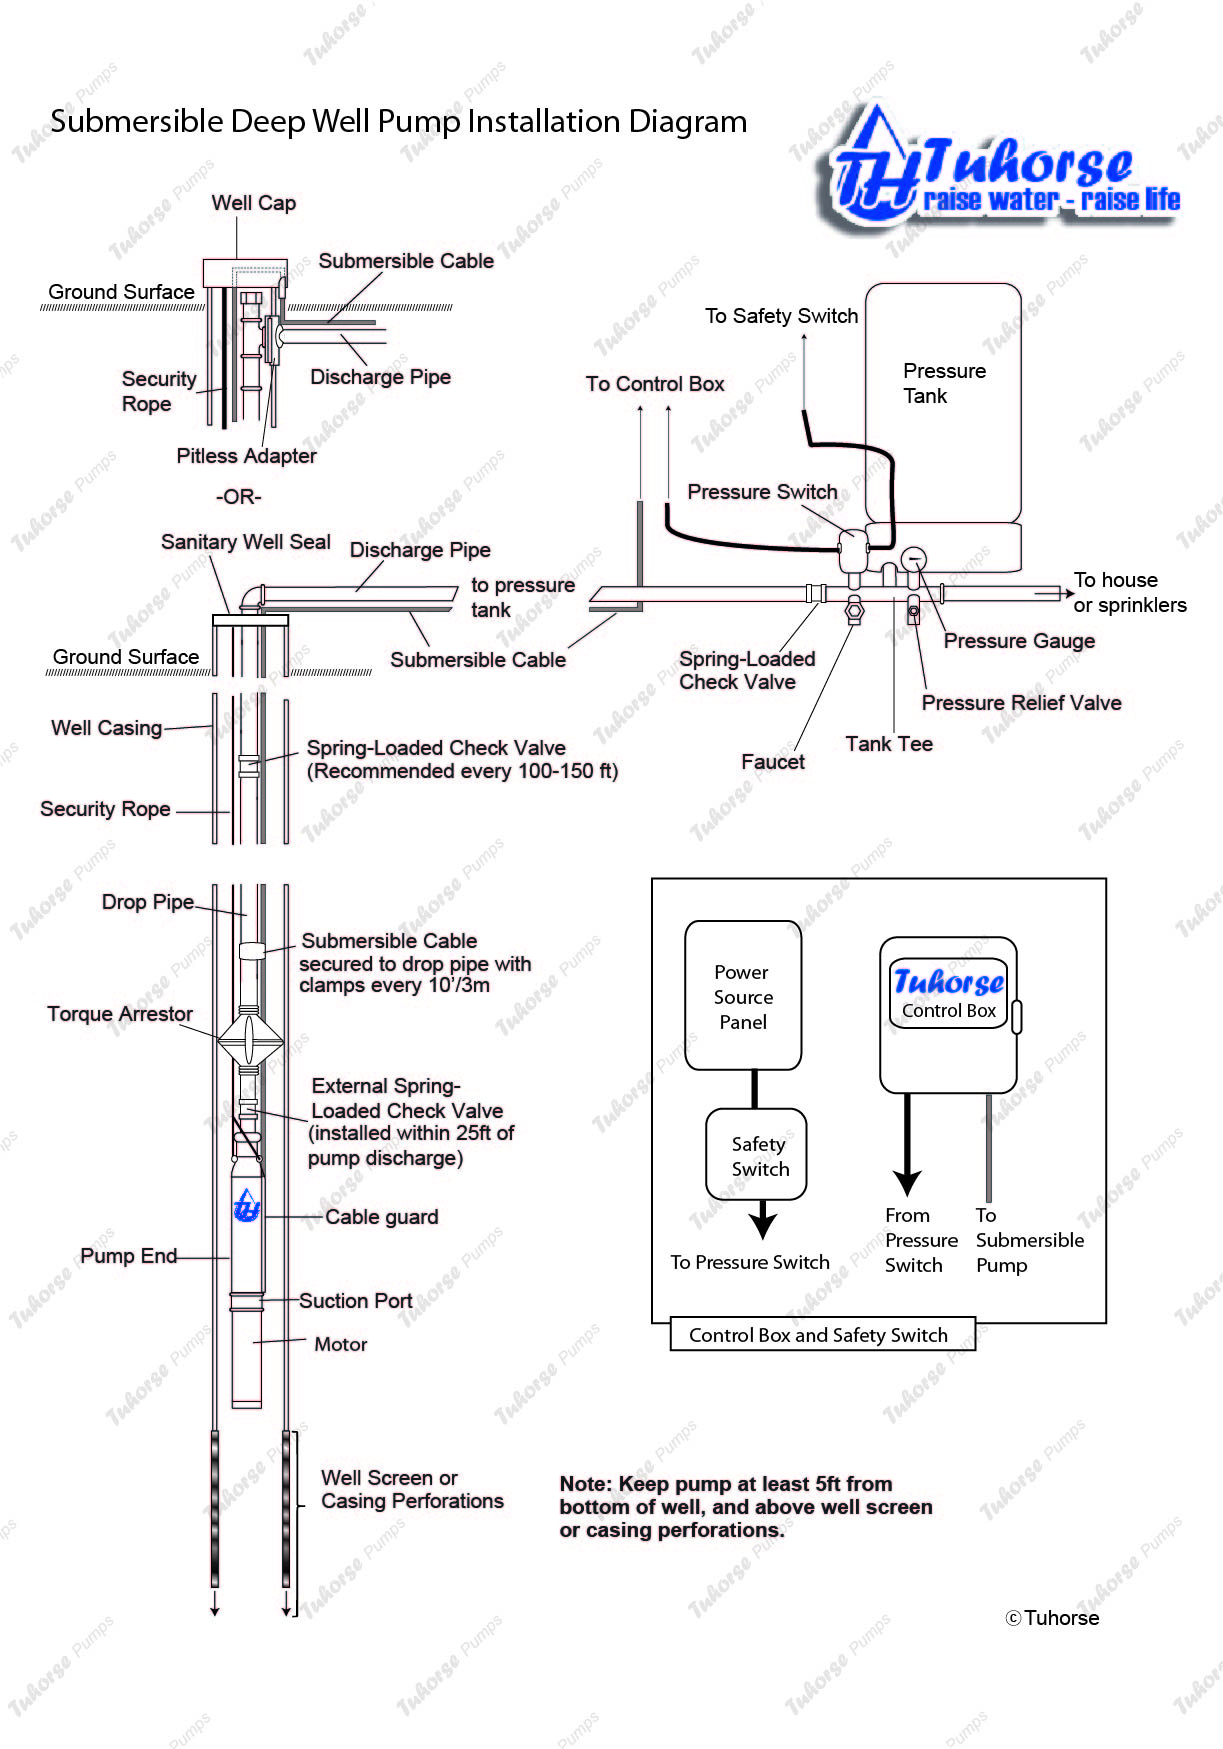 watermarkedinstallationdiagram4 pump installation Submersible Well Pumps Diagrams at bakdesigns.co